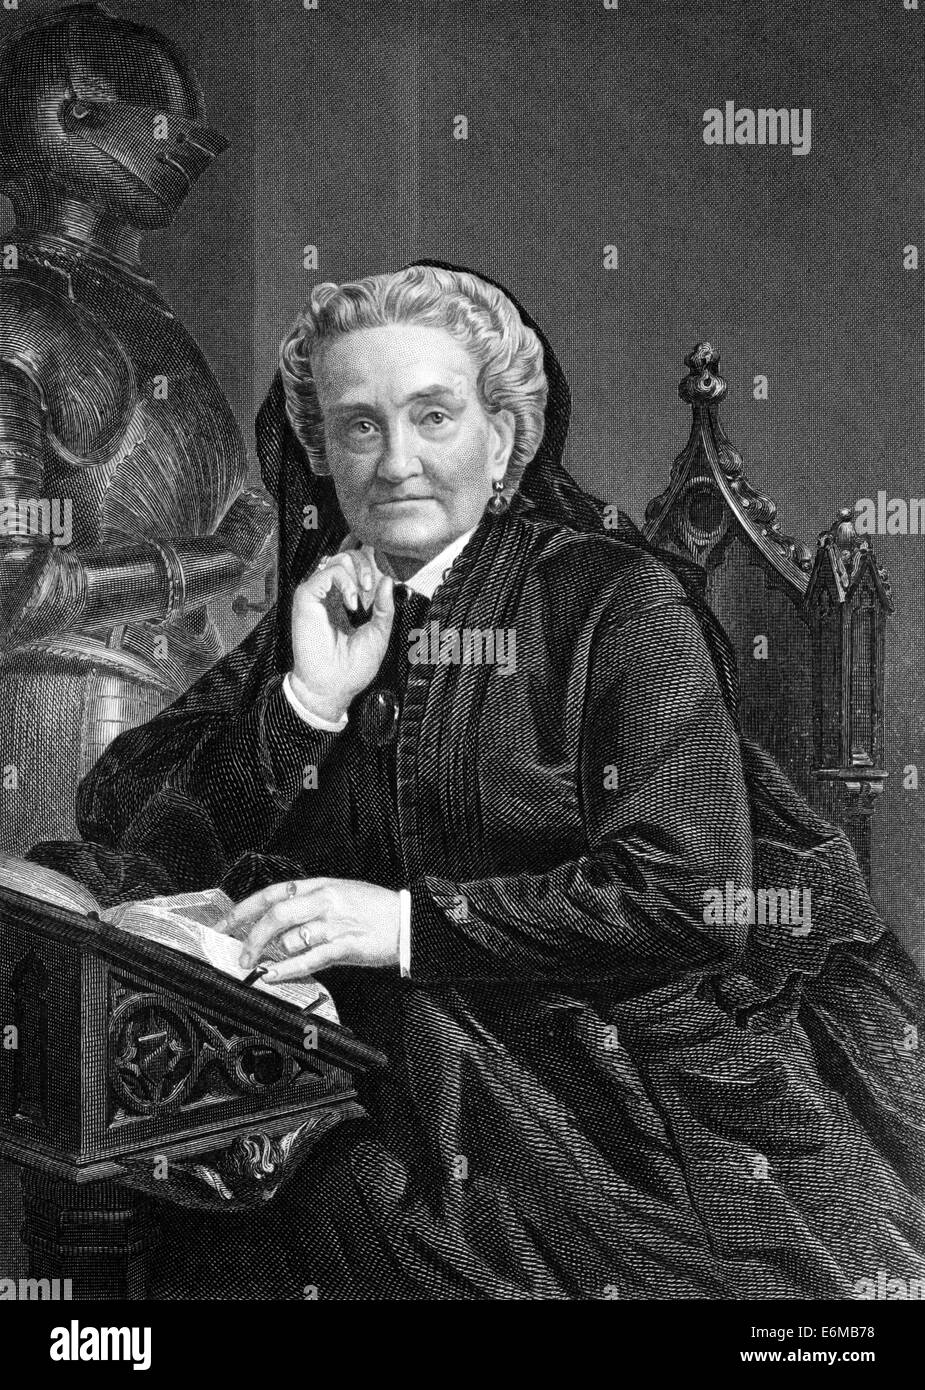 Charlotte Saunders Cushman (1816-1876) on engraving from 1873. American stage actress. Stock Photo